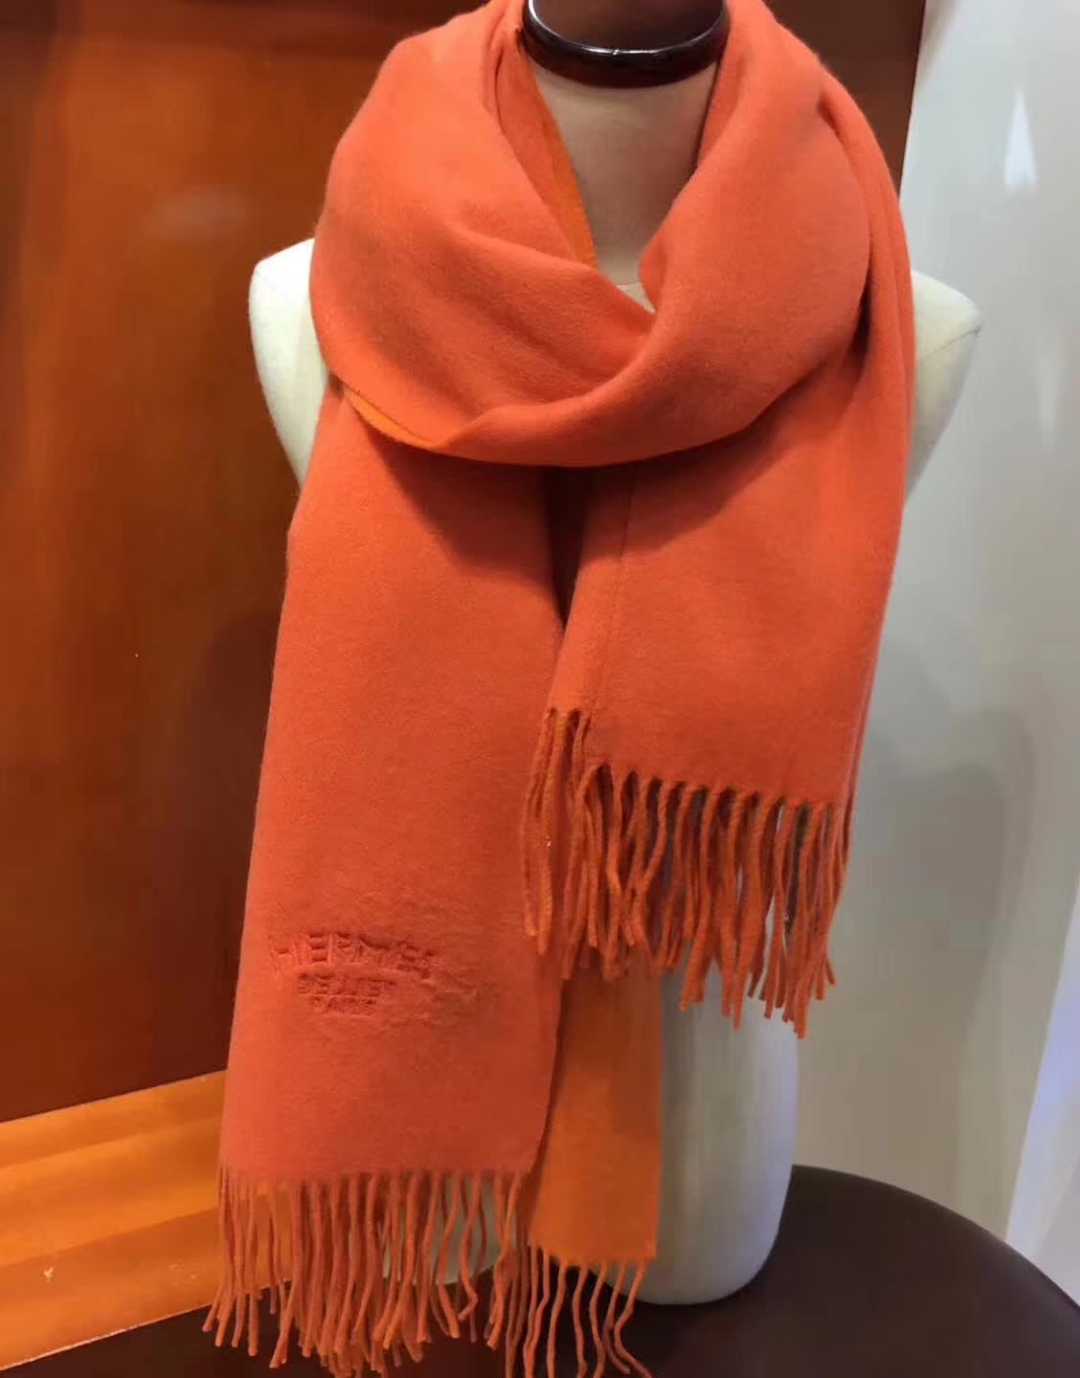 Discount Hermes 100% Cashmere Women's Scarf in Orange & Yellow